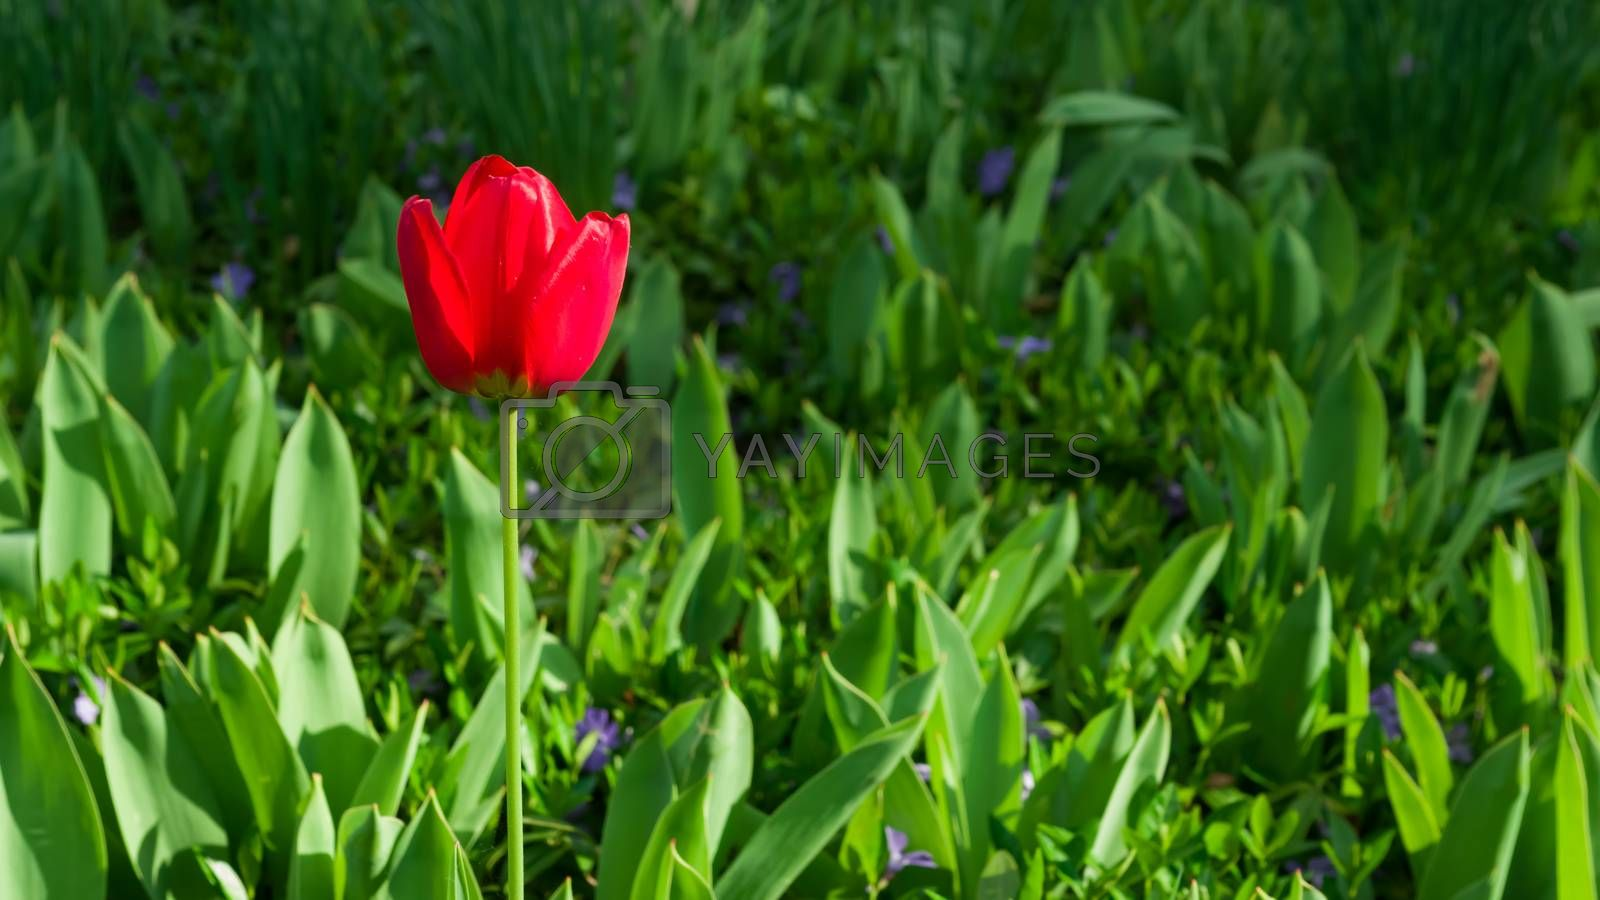 Tulip is the name of the genus of perennial herbaceous bulbous plants